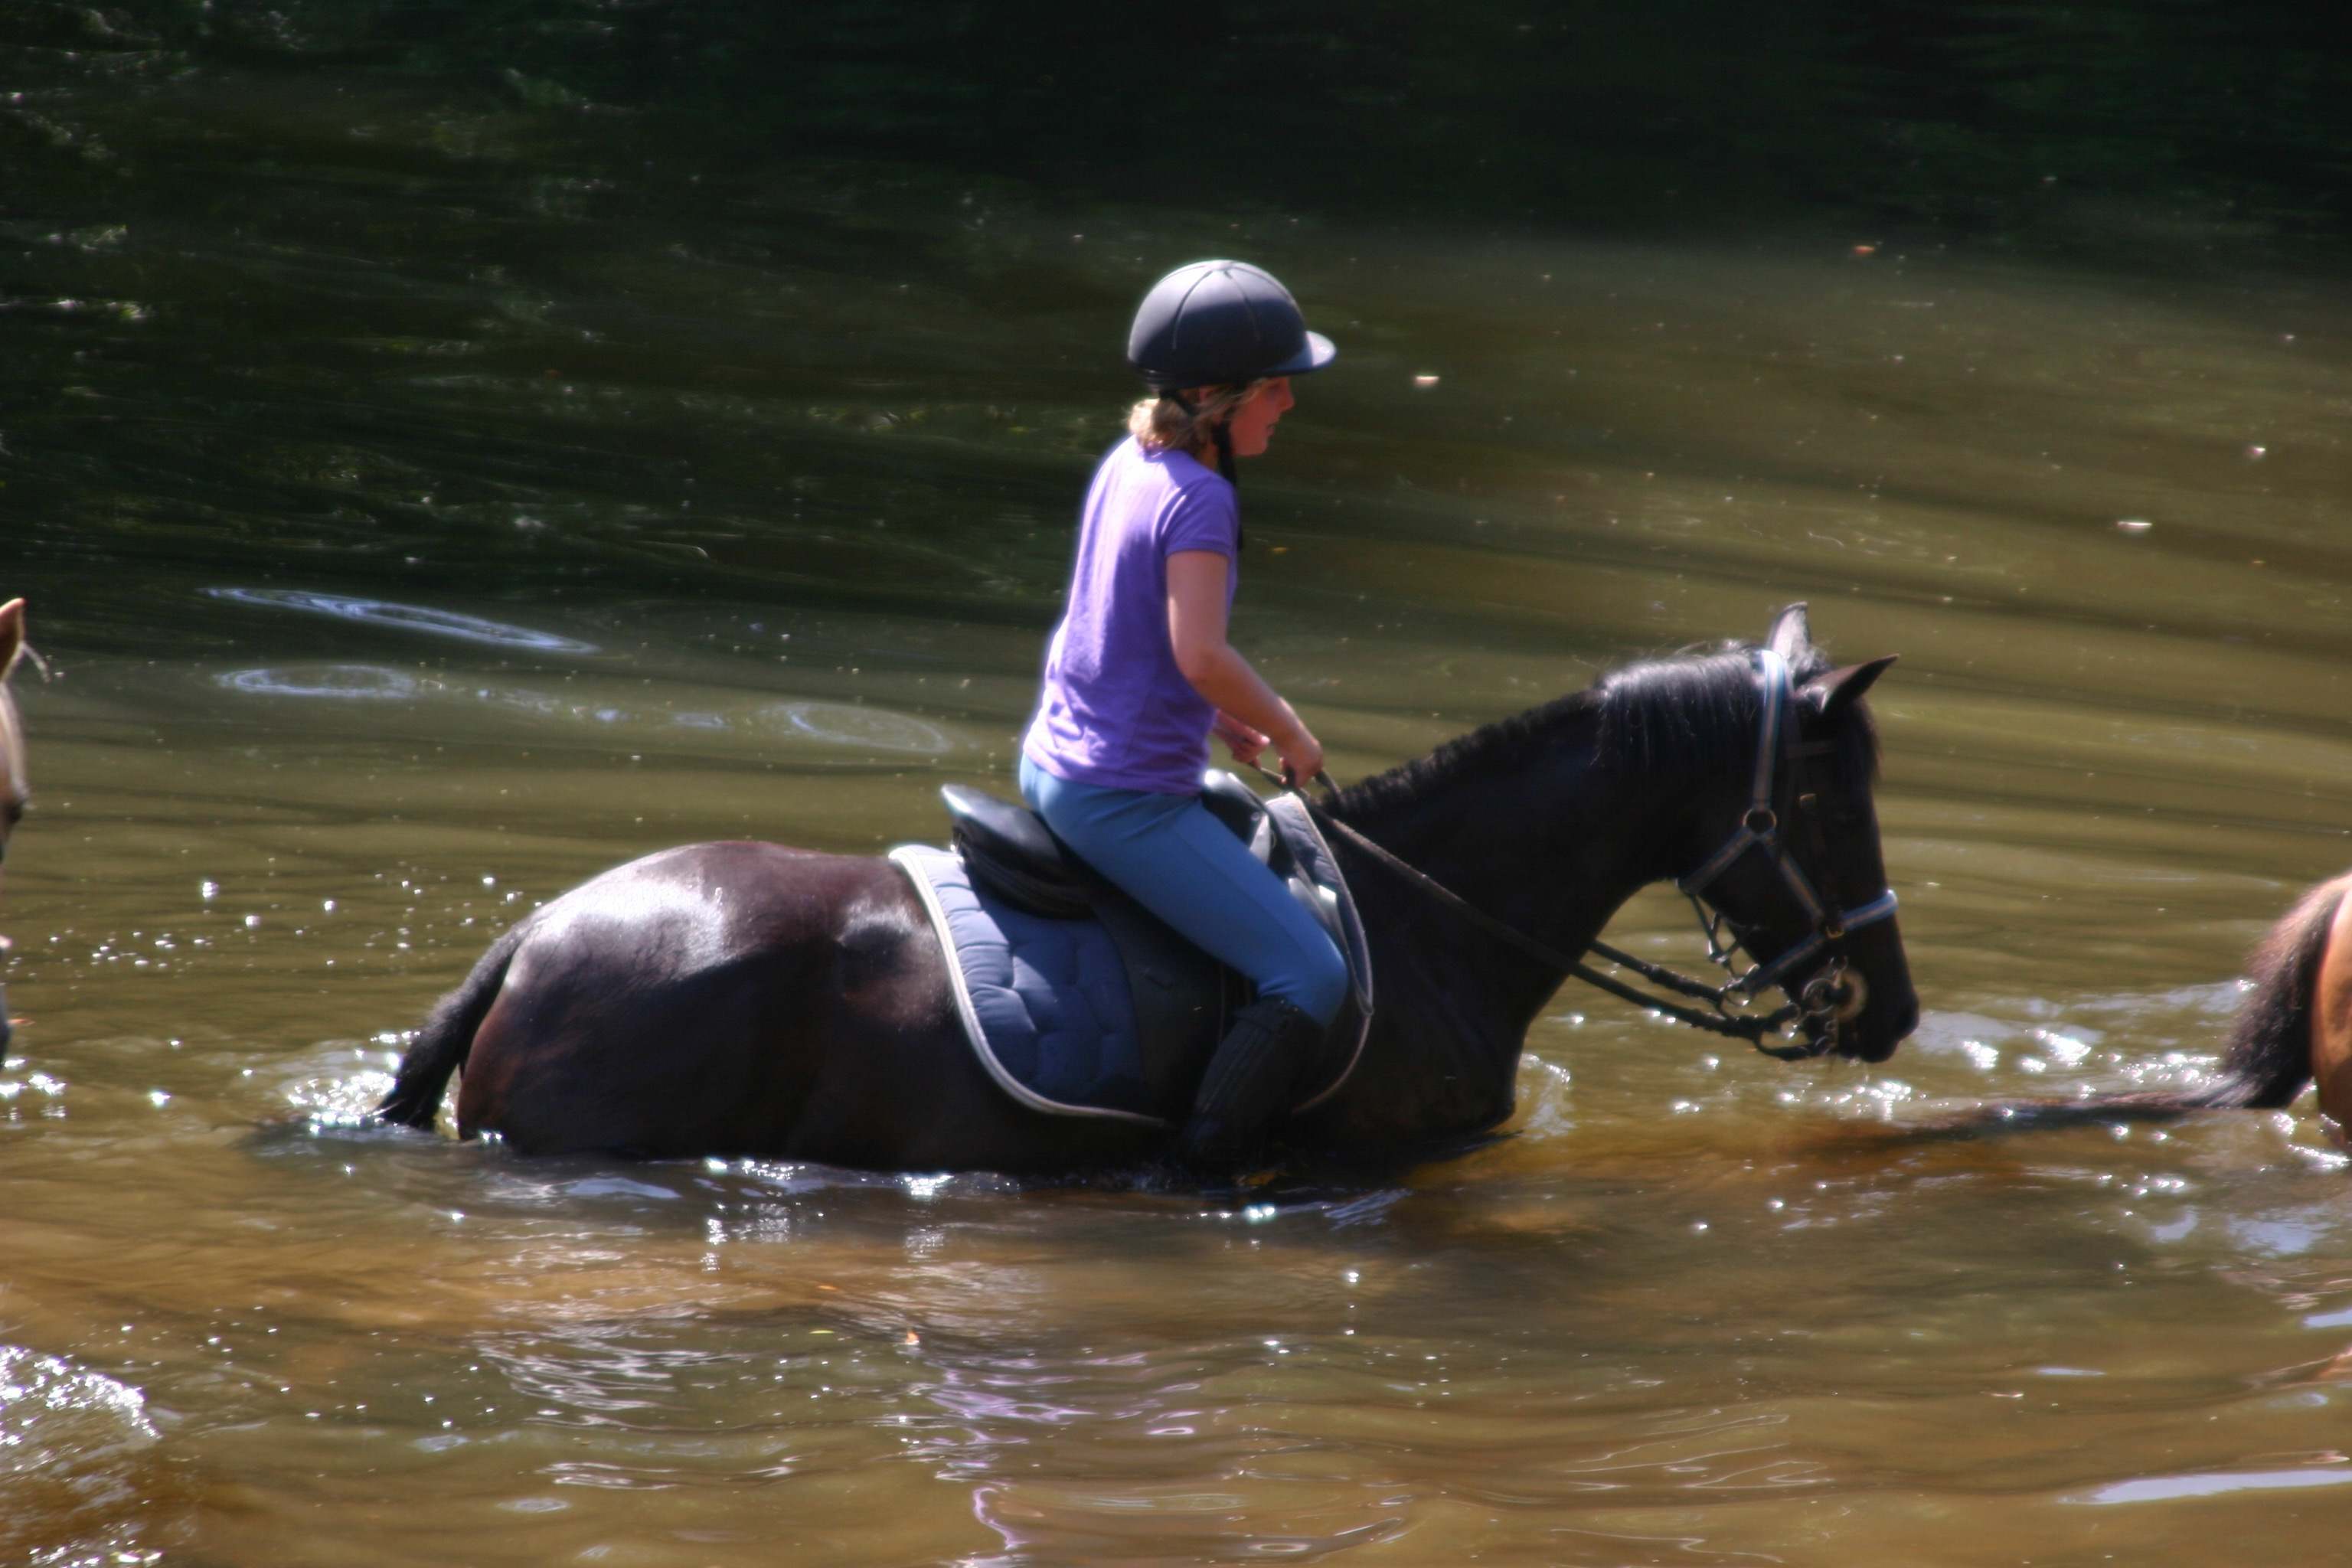 Riding through the Vezere River